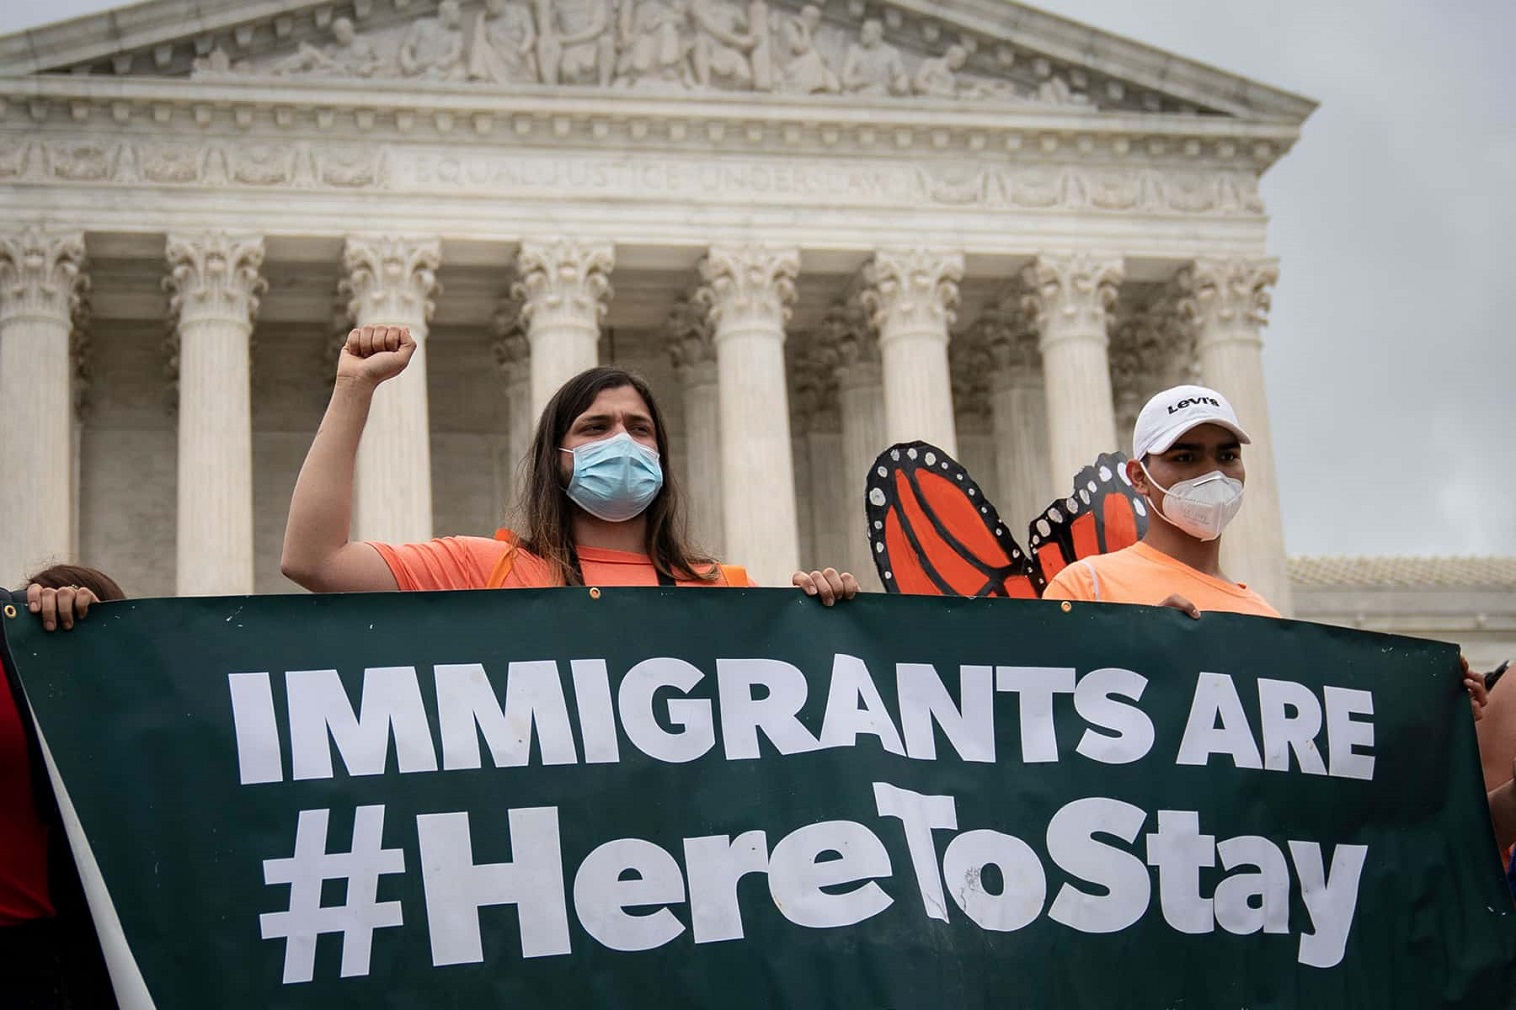 U.S. lawmakers and White House officials Thursday unveiled a sweeping immigration legislation that will open the path to citizenship for 11 million undocumented migrants living in the United States without legal status.